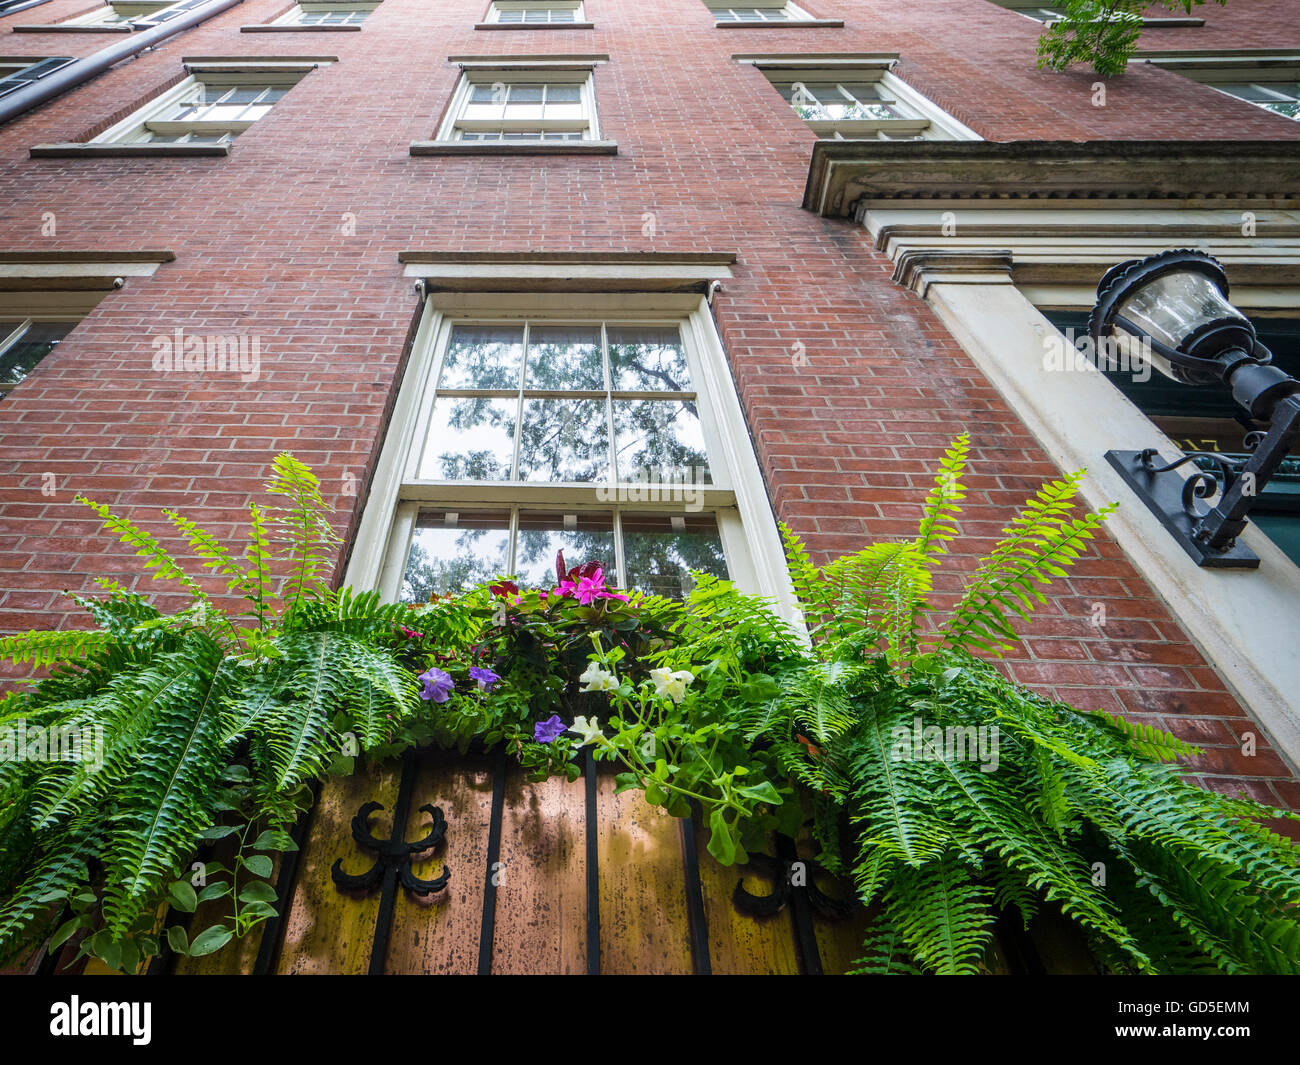 Flowers and ferns in a window box decorate an attractive brick building in residential Philadelphia - Stock Image